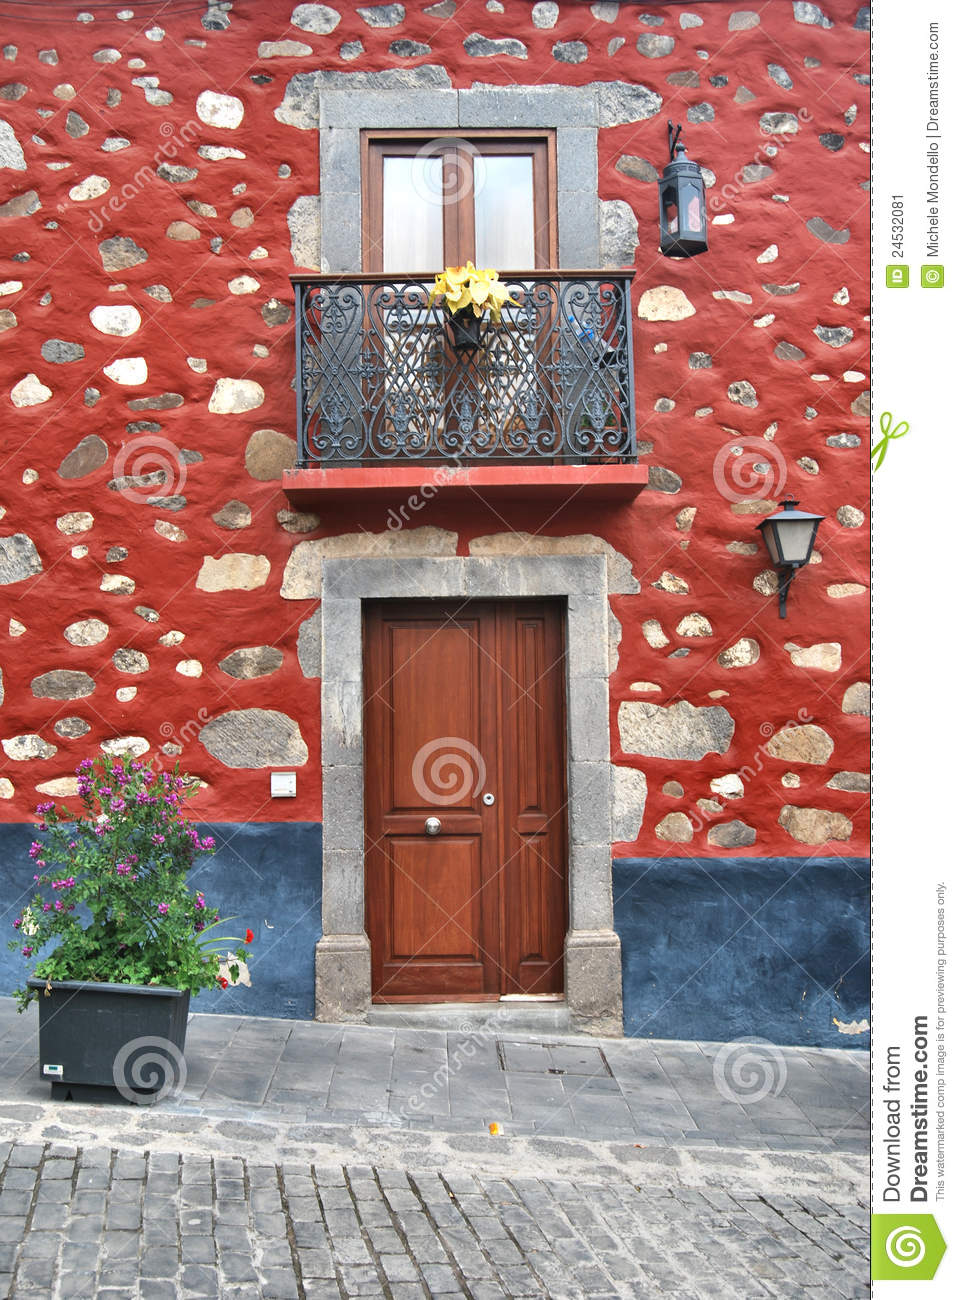 Typical house in gran canaria stock image image 24532081 - Houses in gran canaria ...